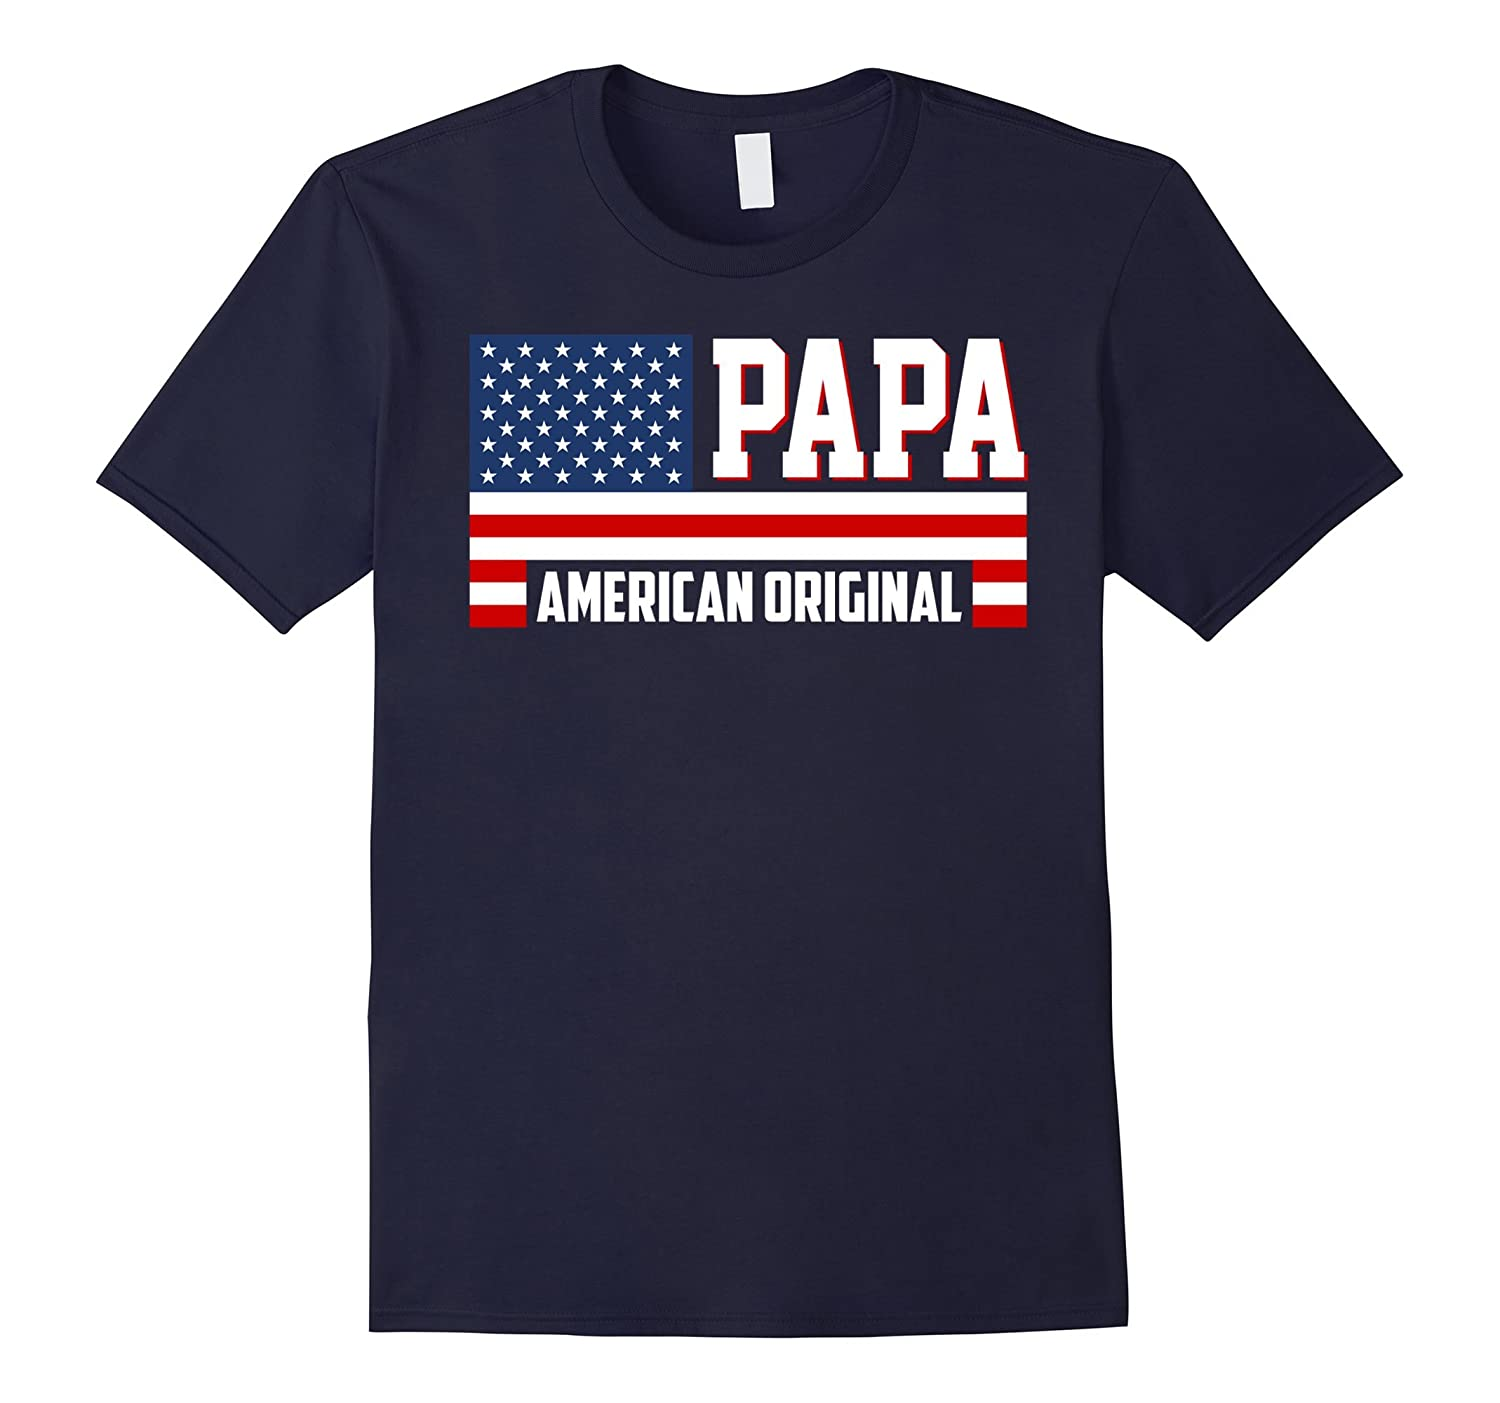 papa american original t shirt goatstee. Black Bedroom Furniture Sets. Home Design Ideas